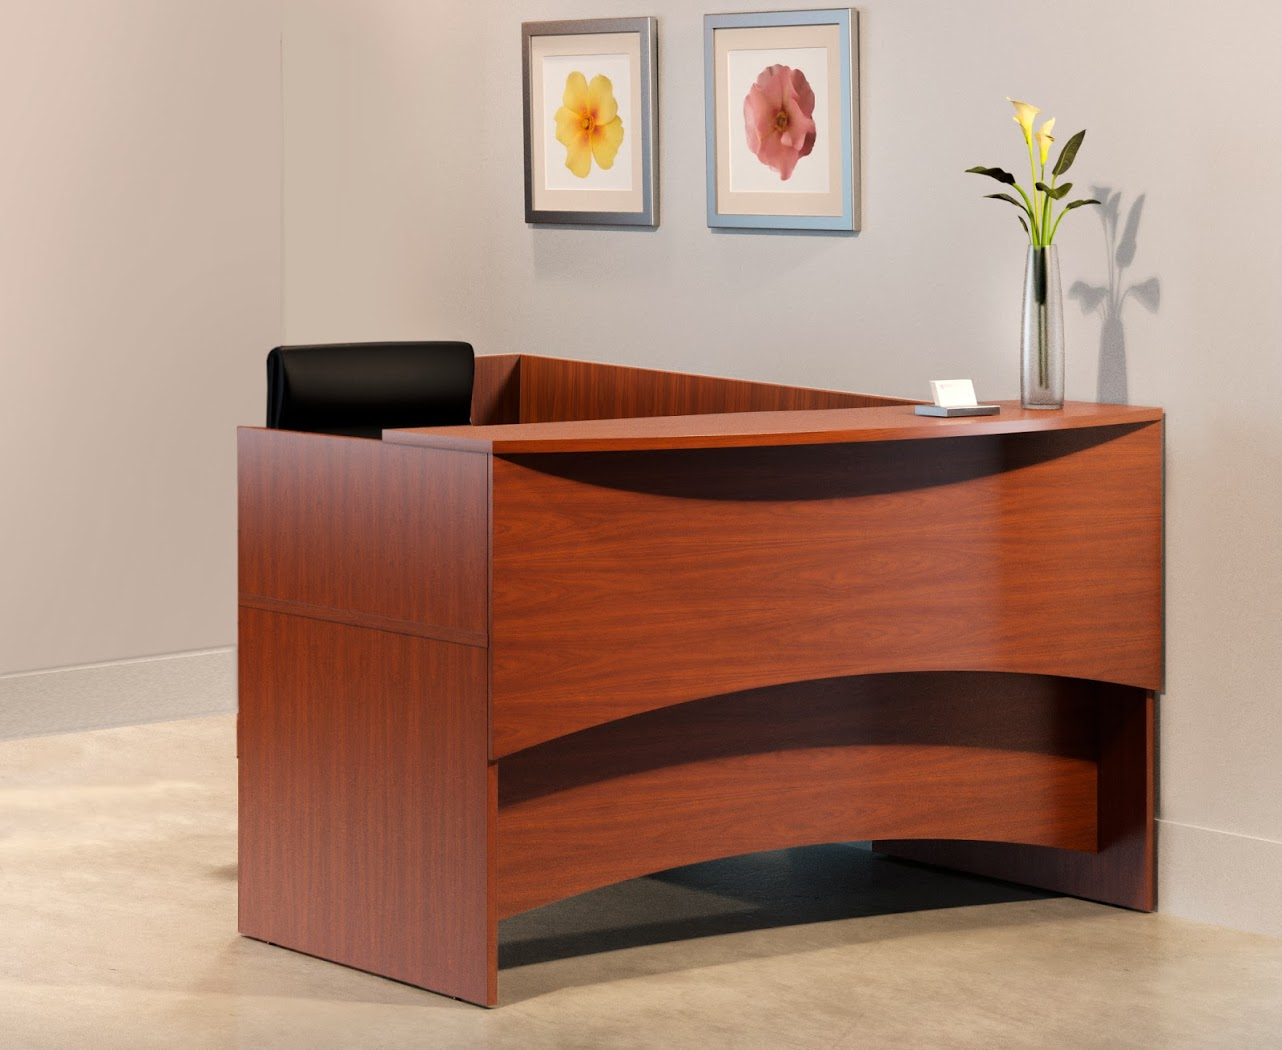 hooker desk chair ergonomic store san jose mayline brighton l shape reception with storage- 2 colors available- new!   office resource ...